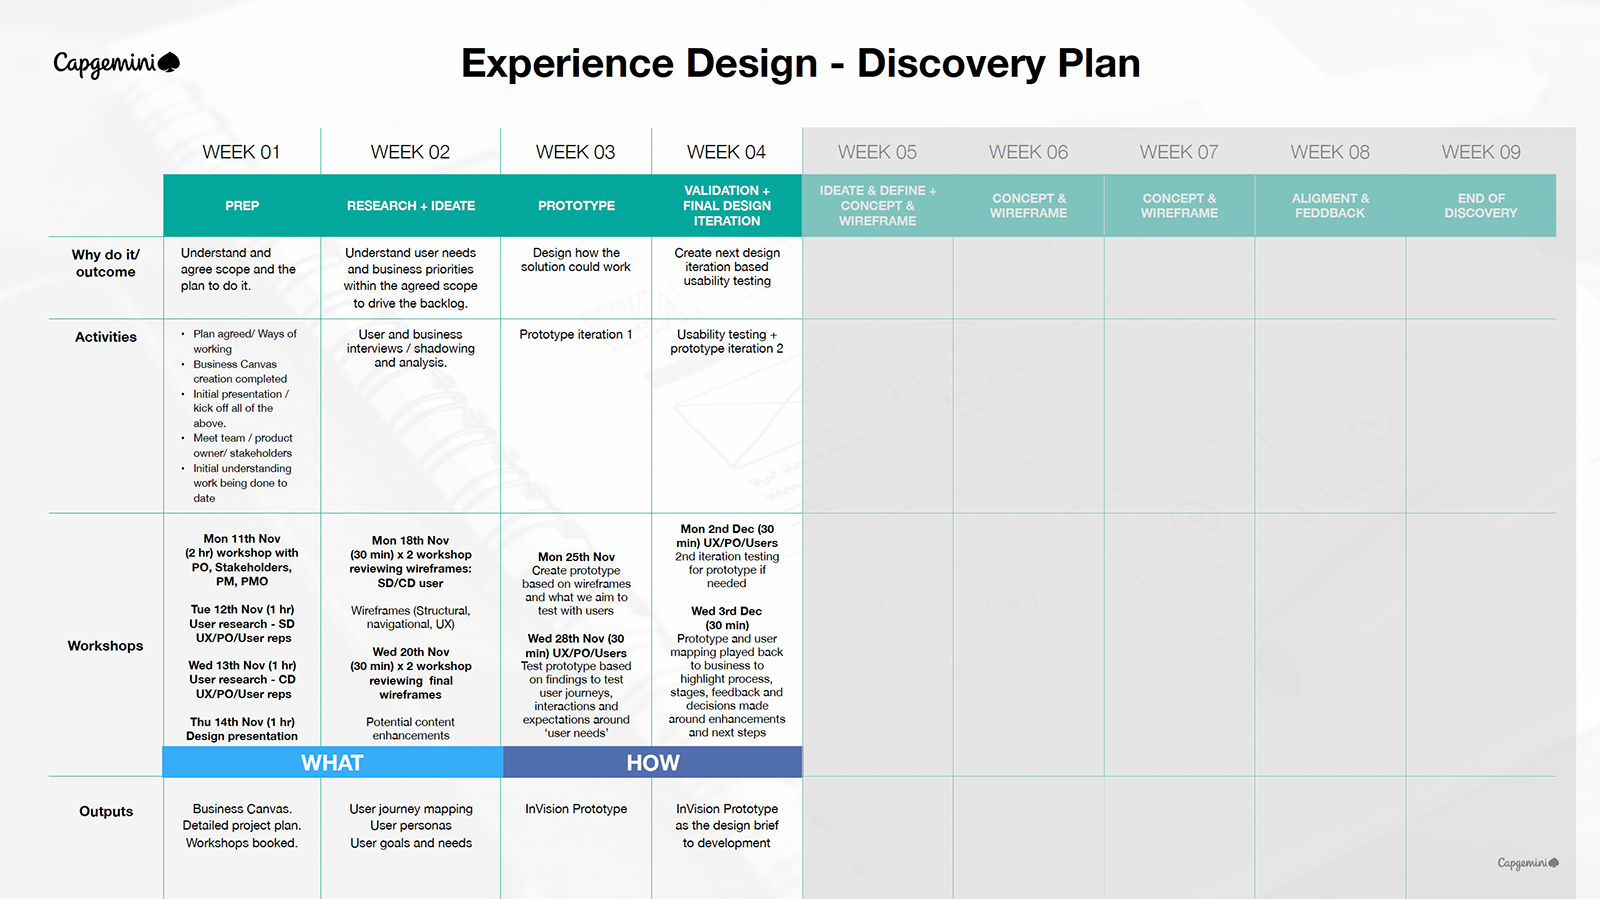 Discovery: Aligning Stakeholders